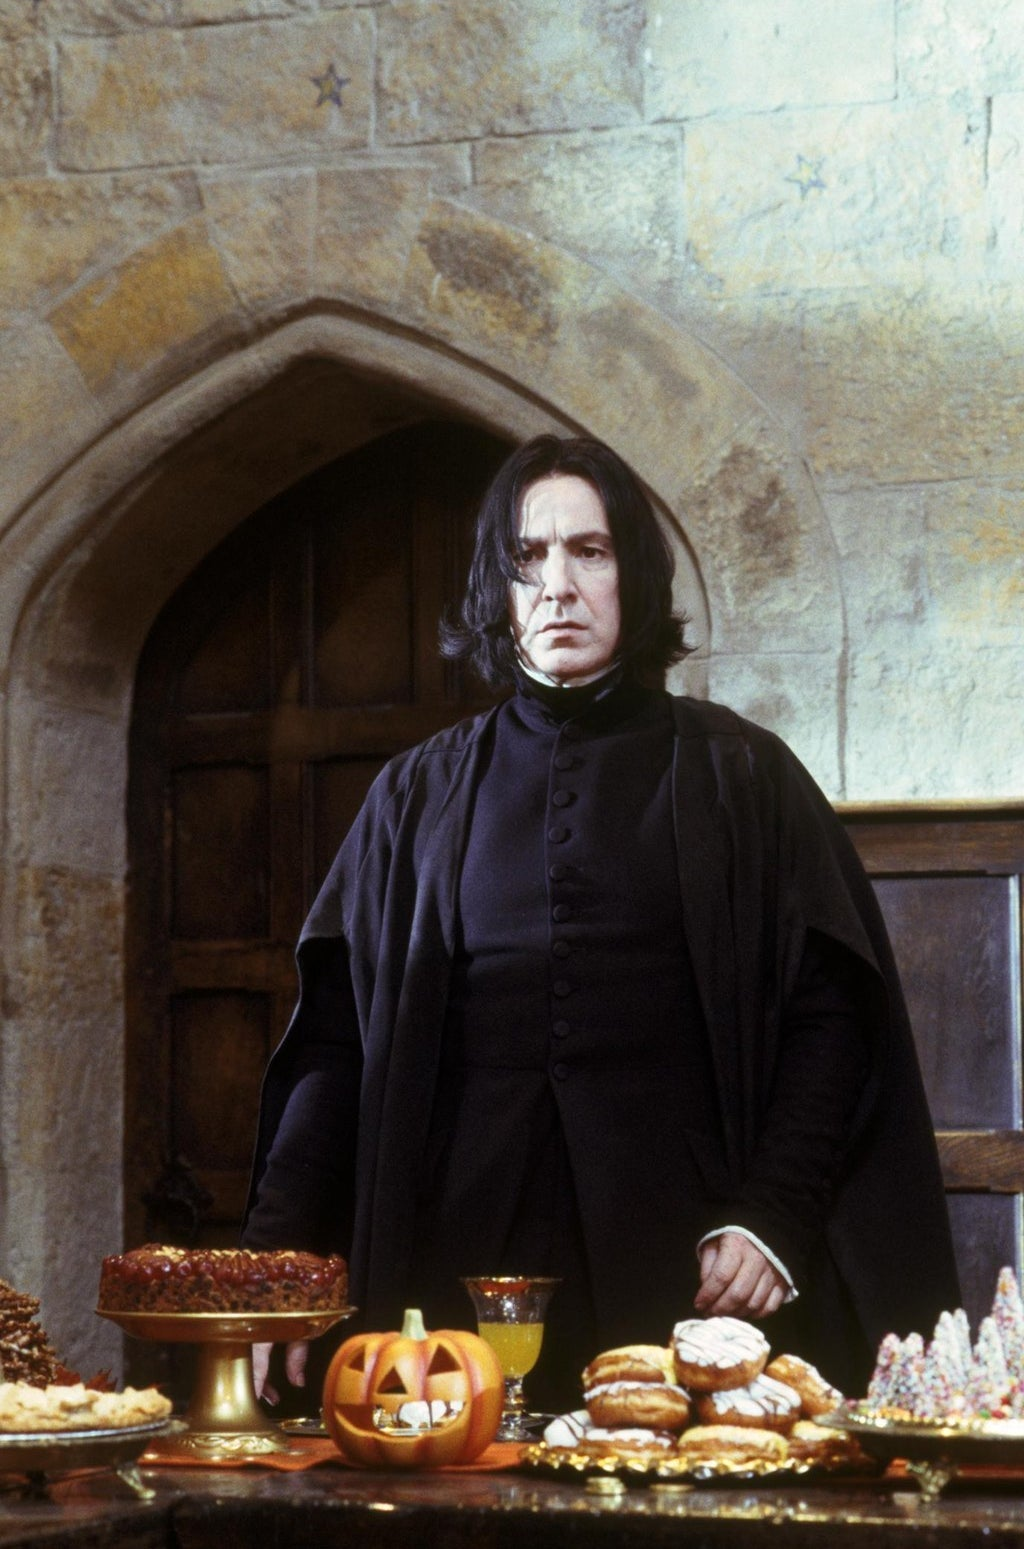 13 Magnificent Roles To Remember Alan Rickman's Career By